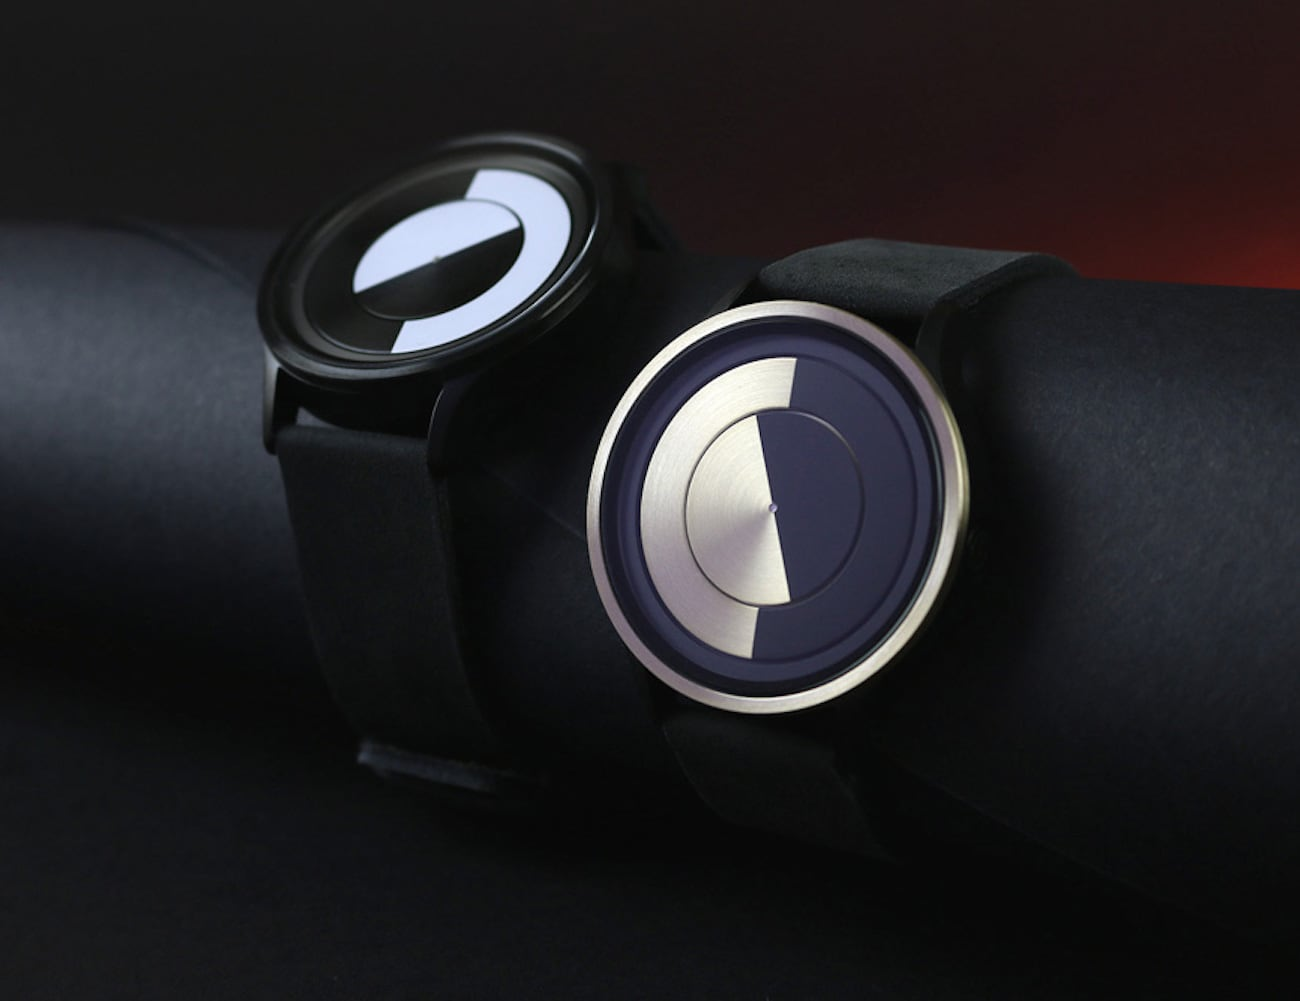 Ziiiro Lunar Modern Wristwatch is masterful blend of precision and style